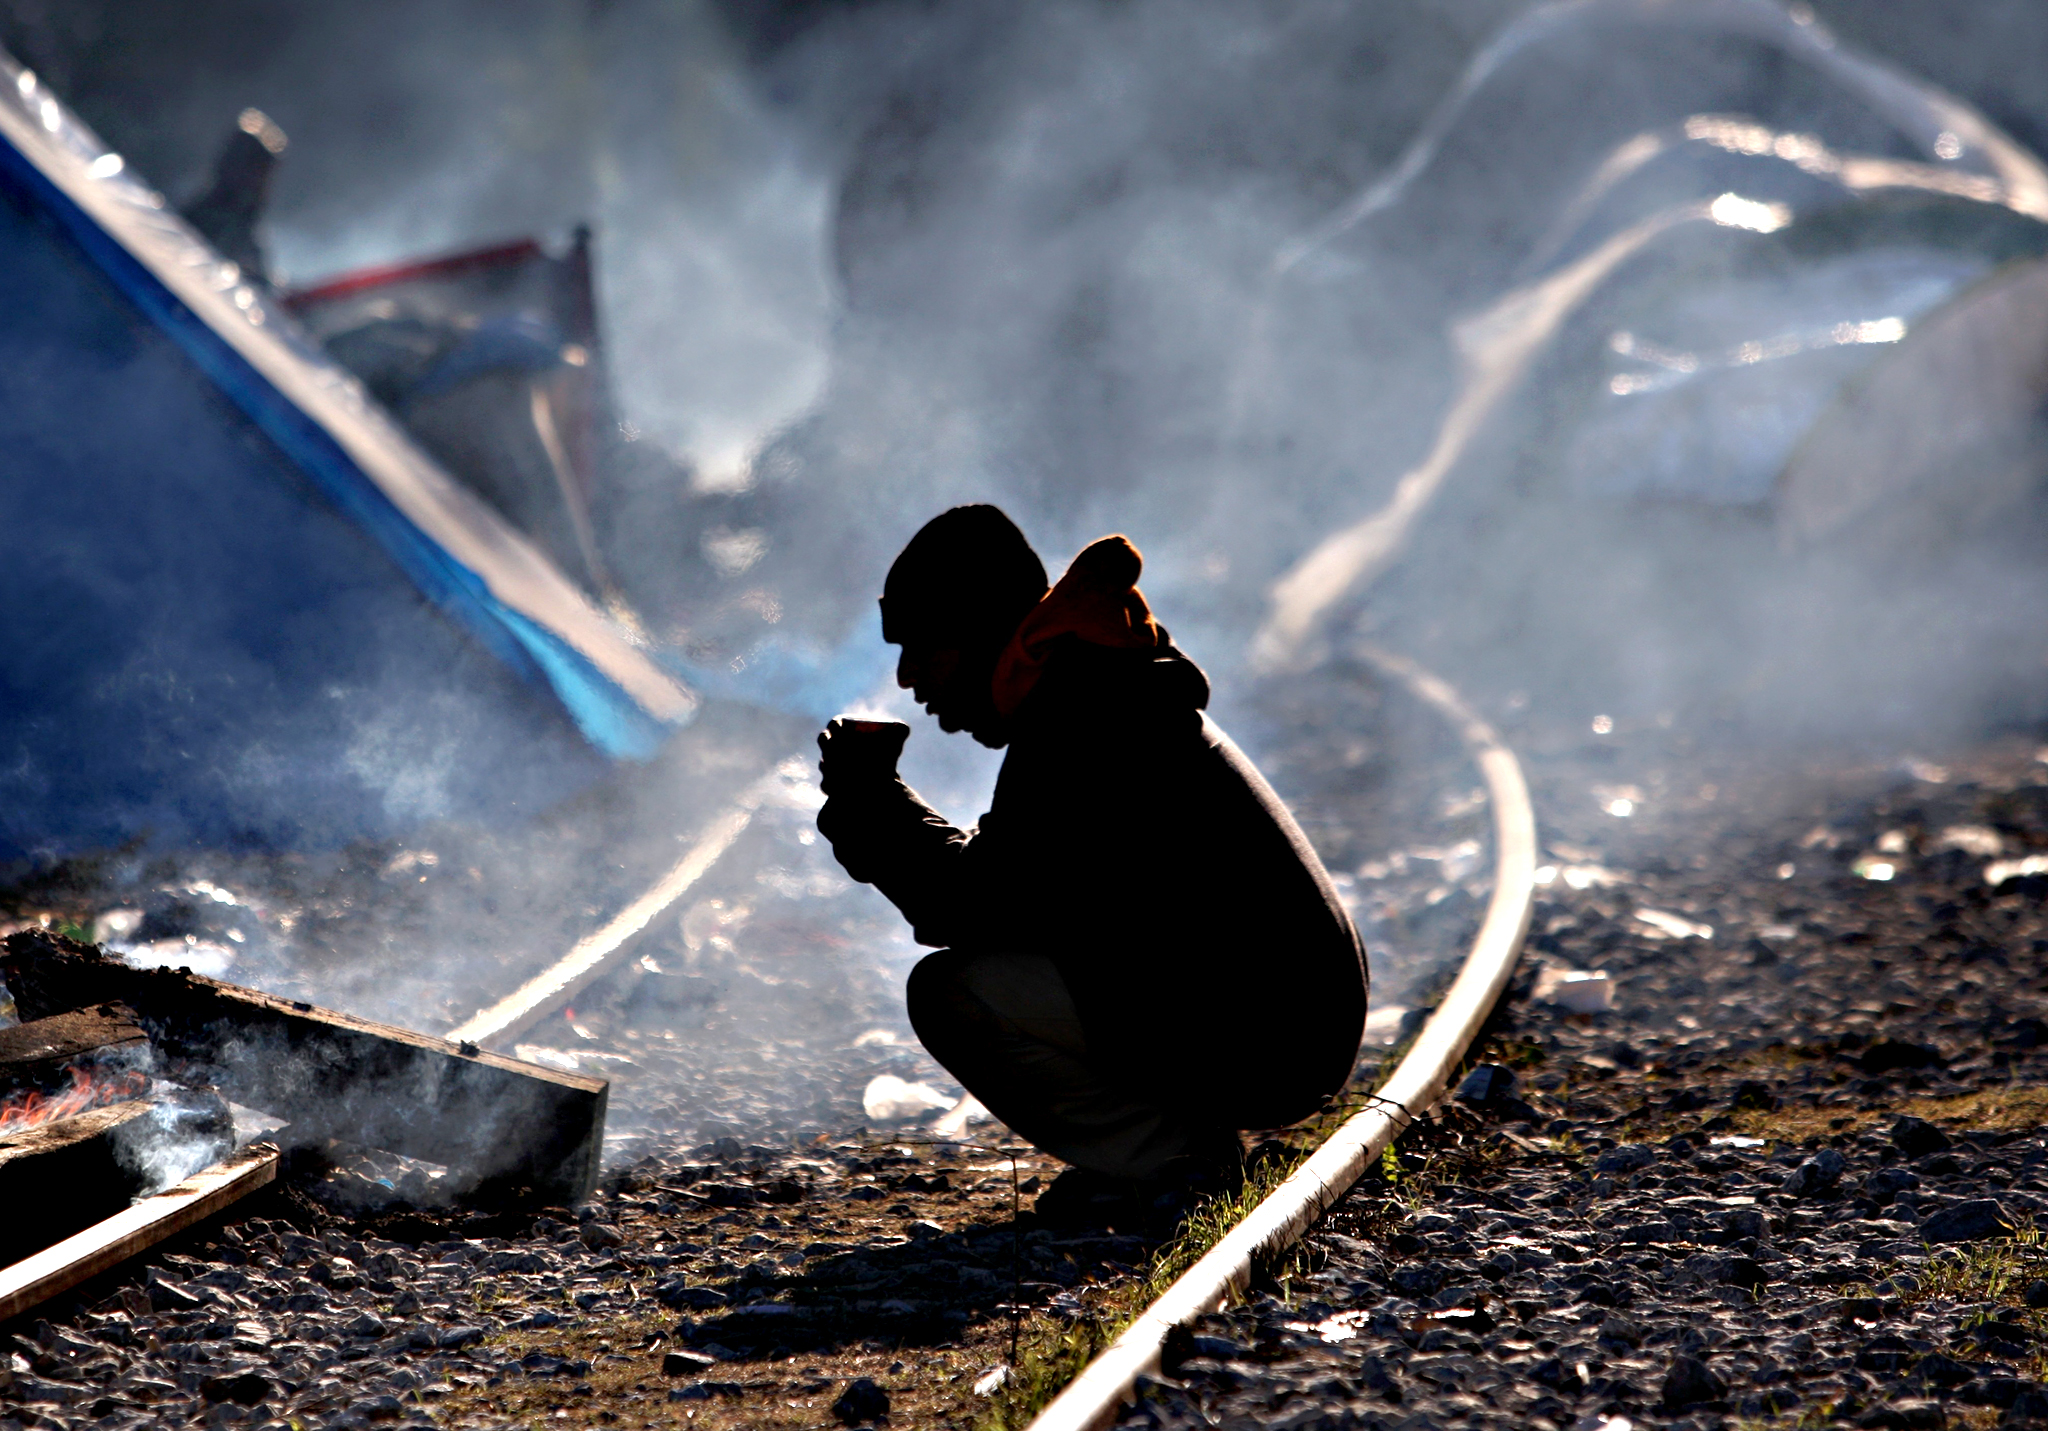 A man sits on rail tracks as migrants and refugees wait to cross the Greek-Macedonian border near Idomeni on December 8, 2015.  Since last week, Macedonia has restricted passage to northern Europe to only Syrians, Iraqis and Afghans who are considered war refugees. All other nationalities are deemed economic migrants and told to turn back, leaving over 1,500 people stuck on the border, mostly Indian, Moroccan, Bangladeshi and Pakistani.